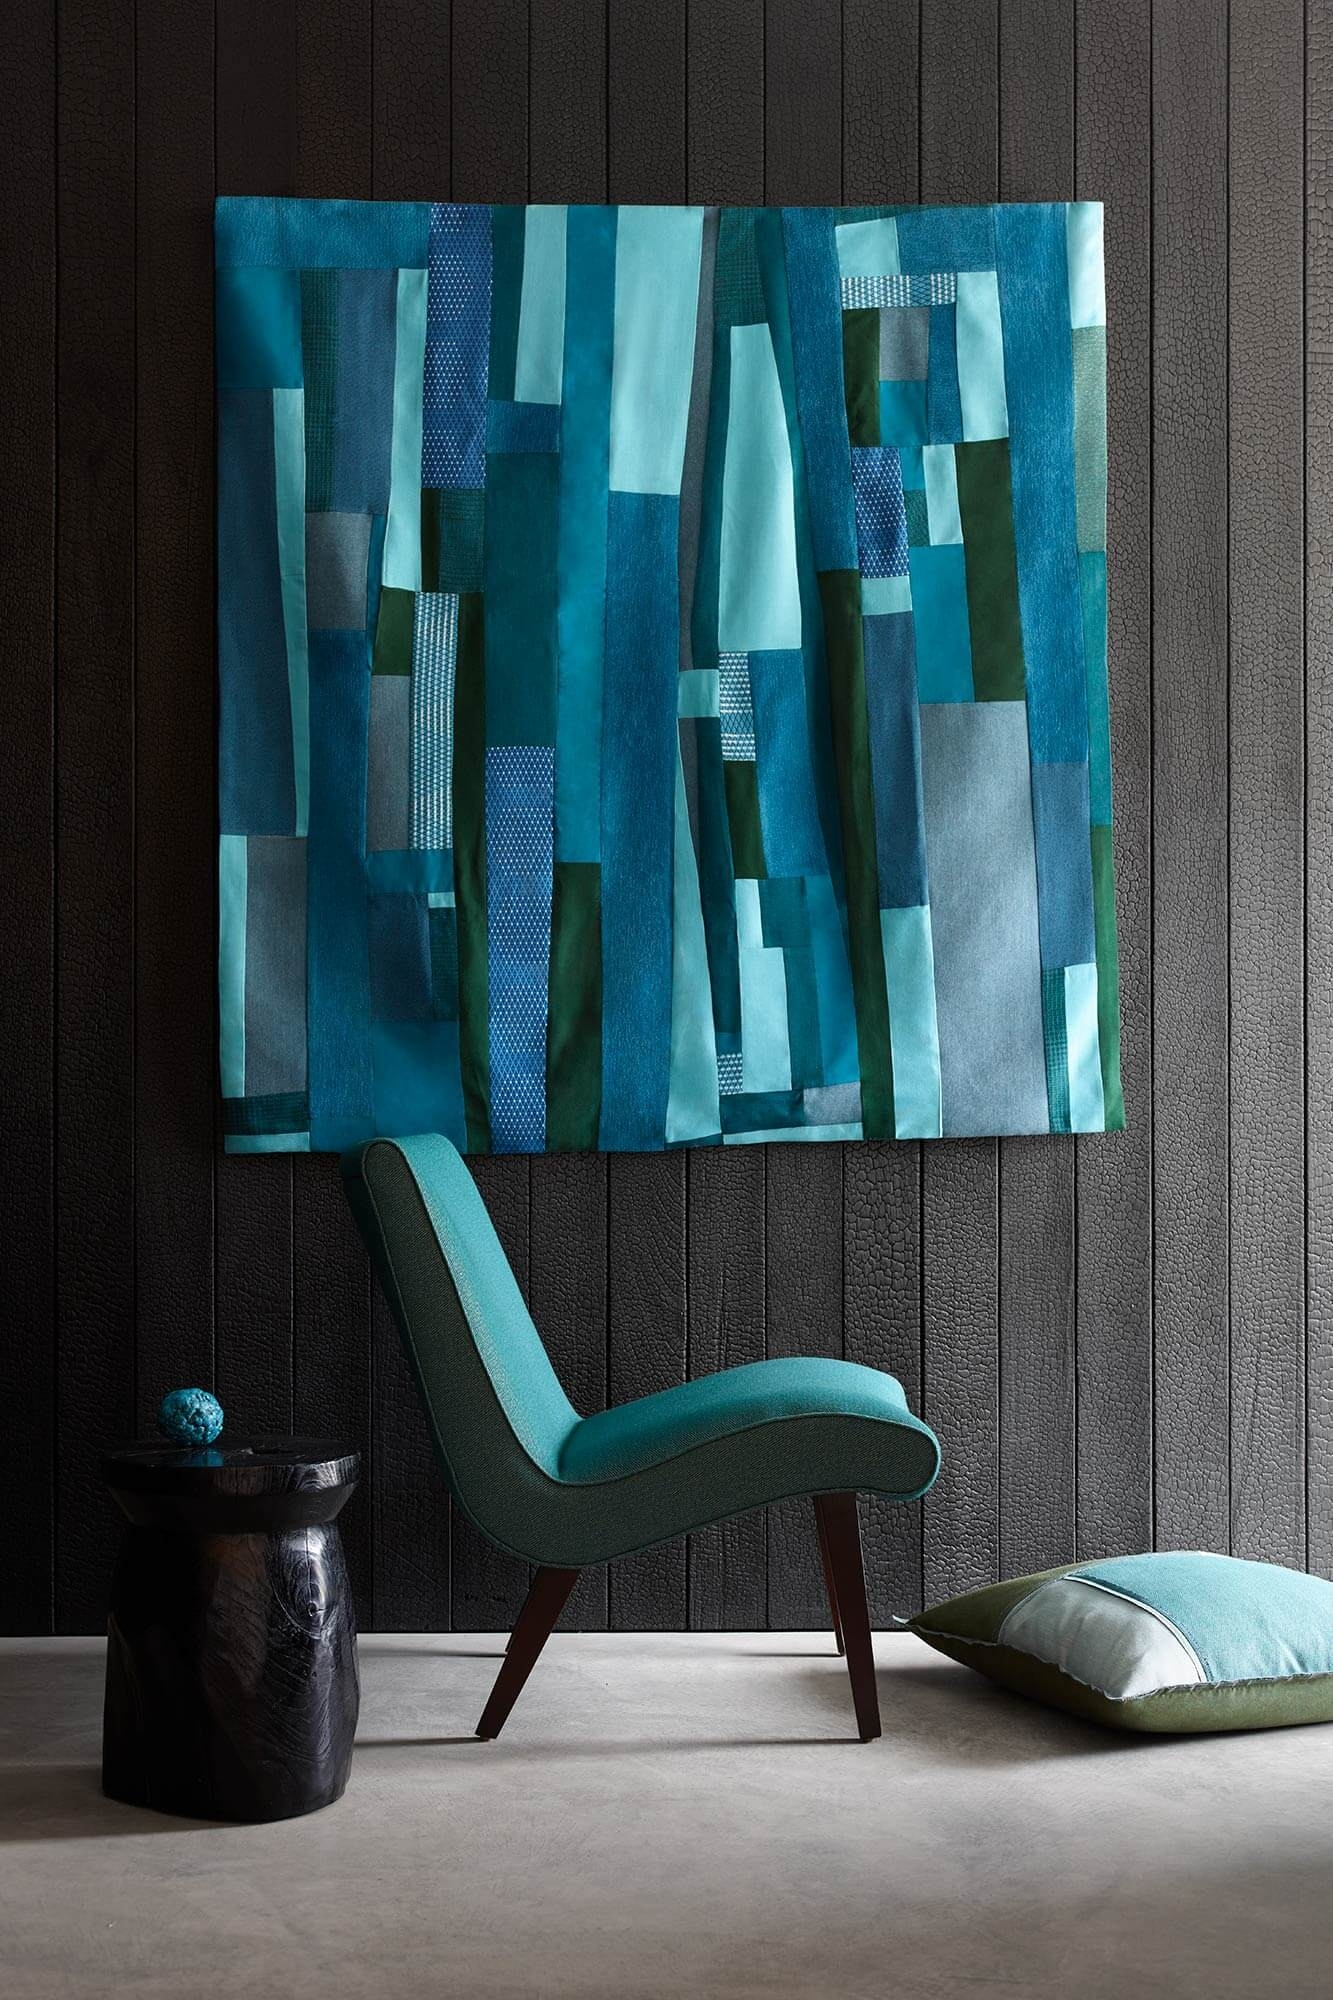 Fabrics For The Home – Sunbrella Fabrics With Regard To Latest Outdoor Fabric Wall Art (View 7 of 15)